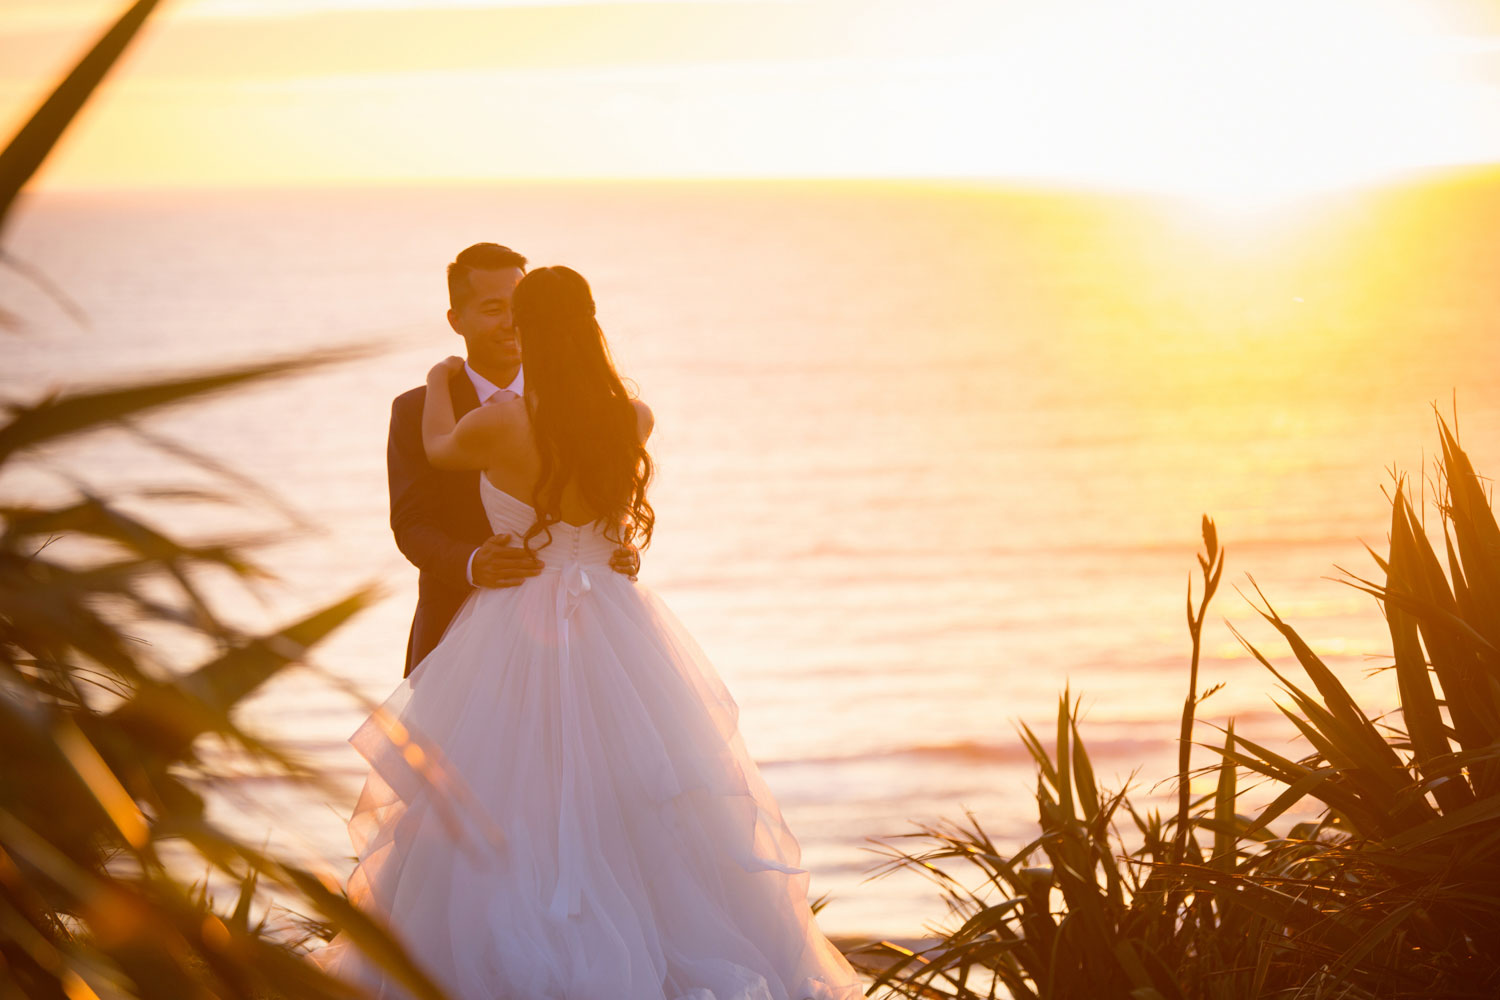 castaways waiuku wedding sunset photo